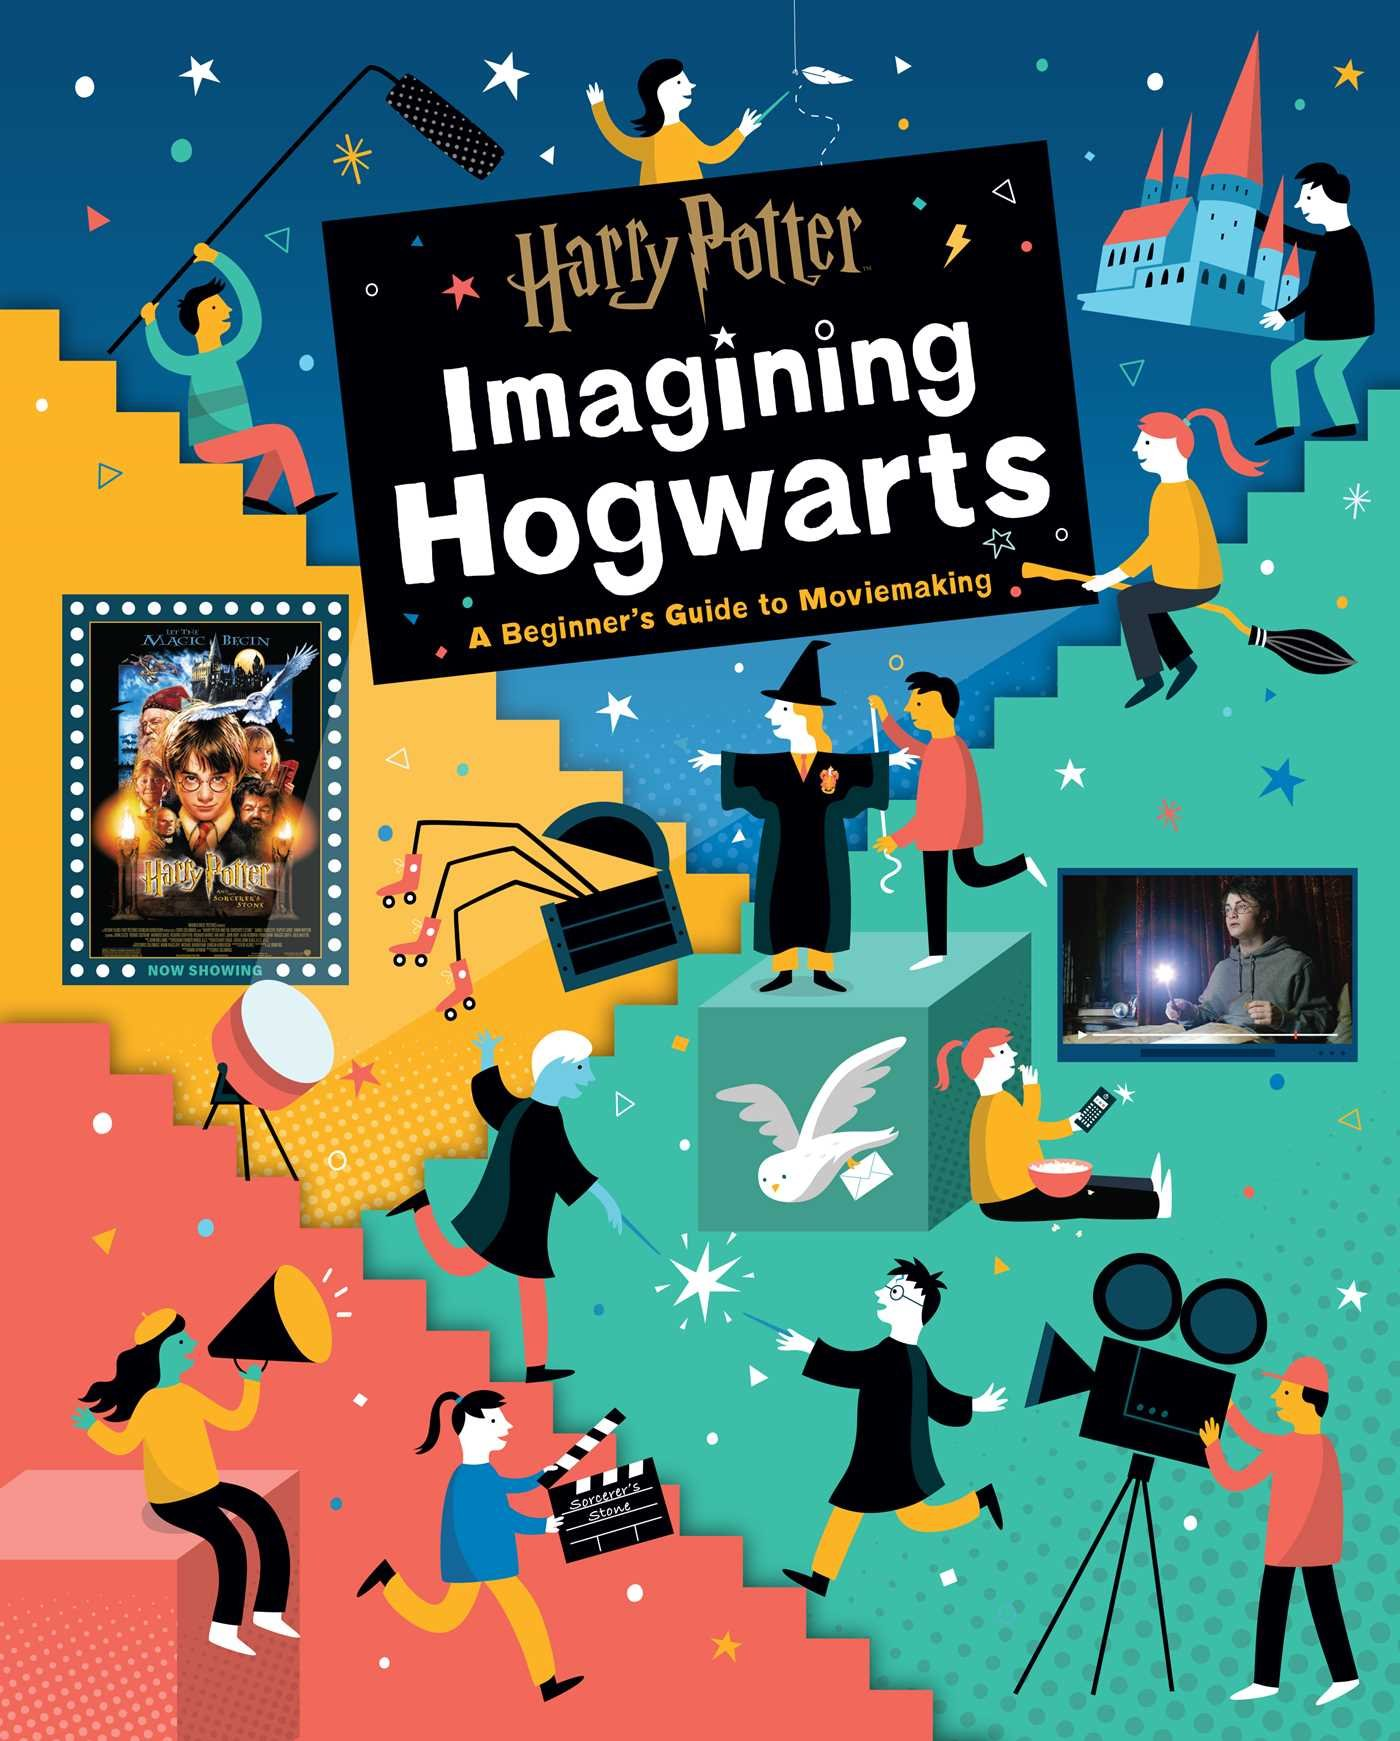 Harry Potter  Imagining Hogwarts   A Beginner's Guide To Moviemaking